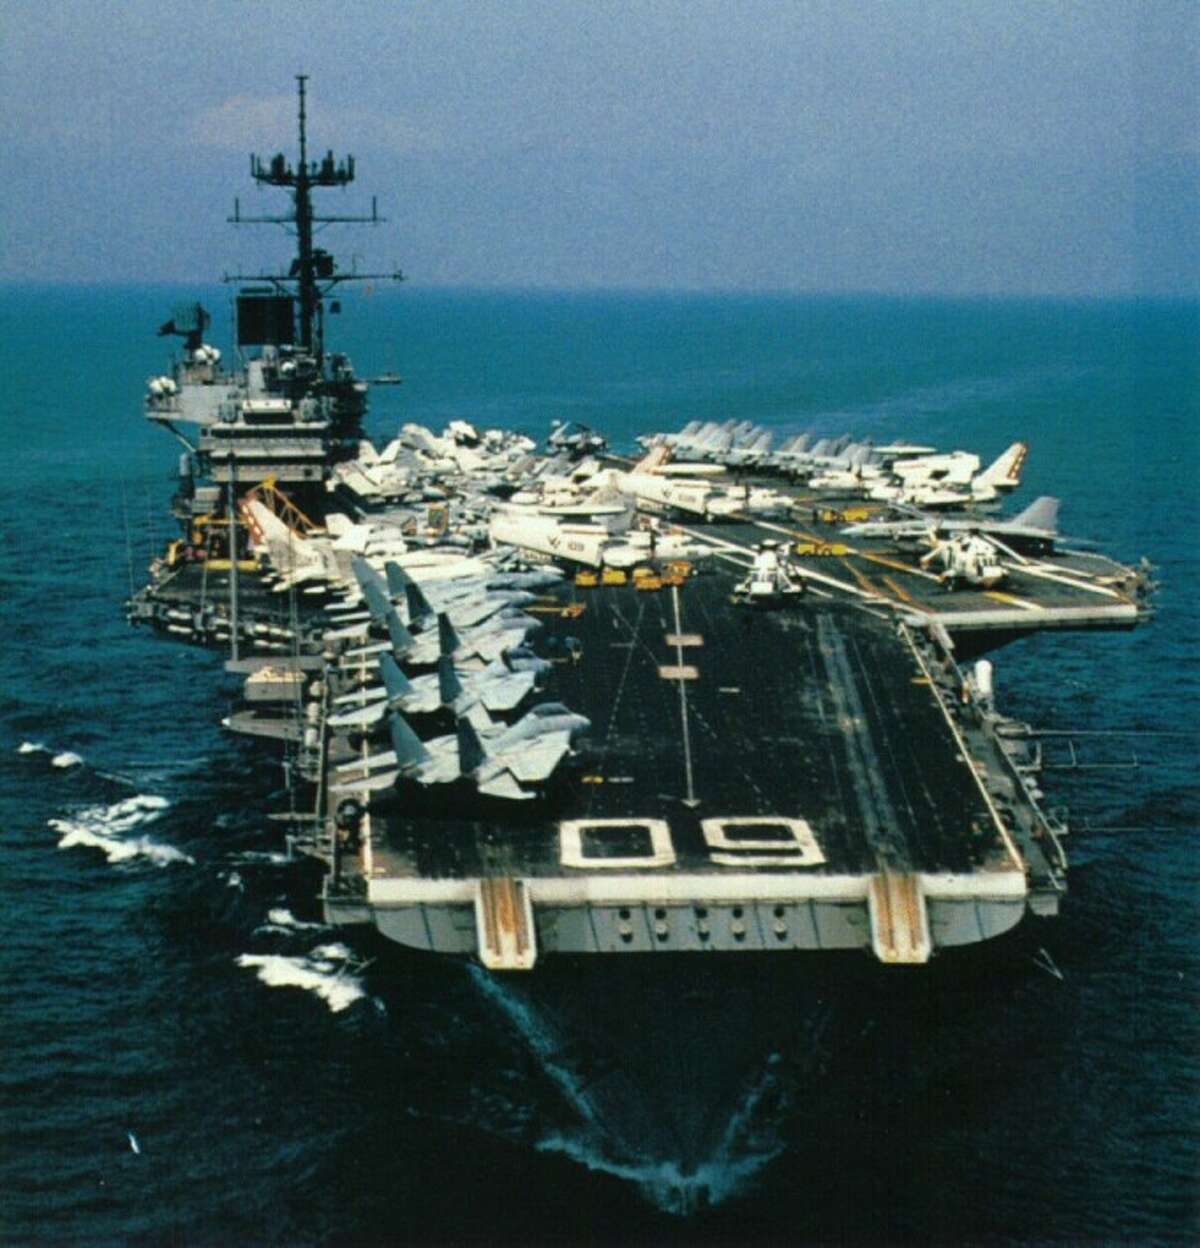 The USS Saratoga has arrived in Brownsville to be dismantled.